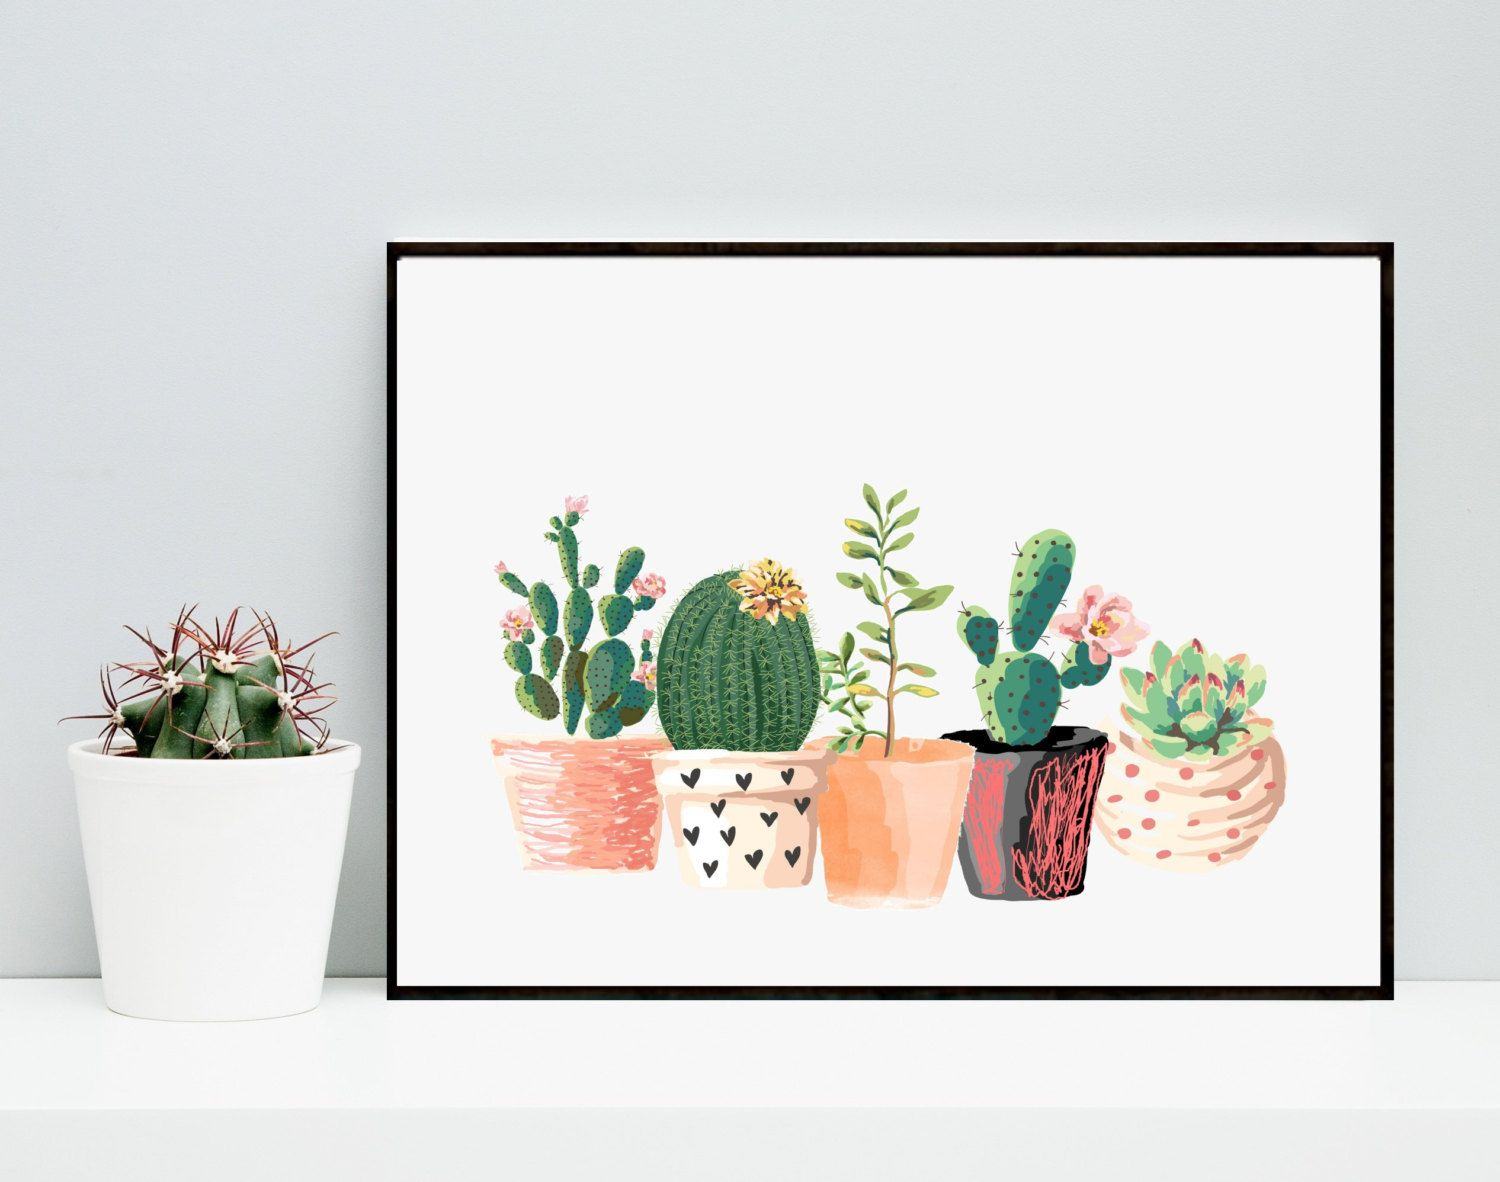 Cactus Print Printable Art Cactus Art Home Decor Potted Cactus Watercolor Succulents Wall Decor